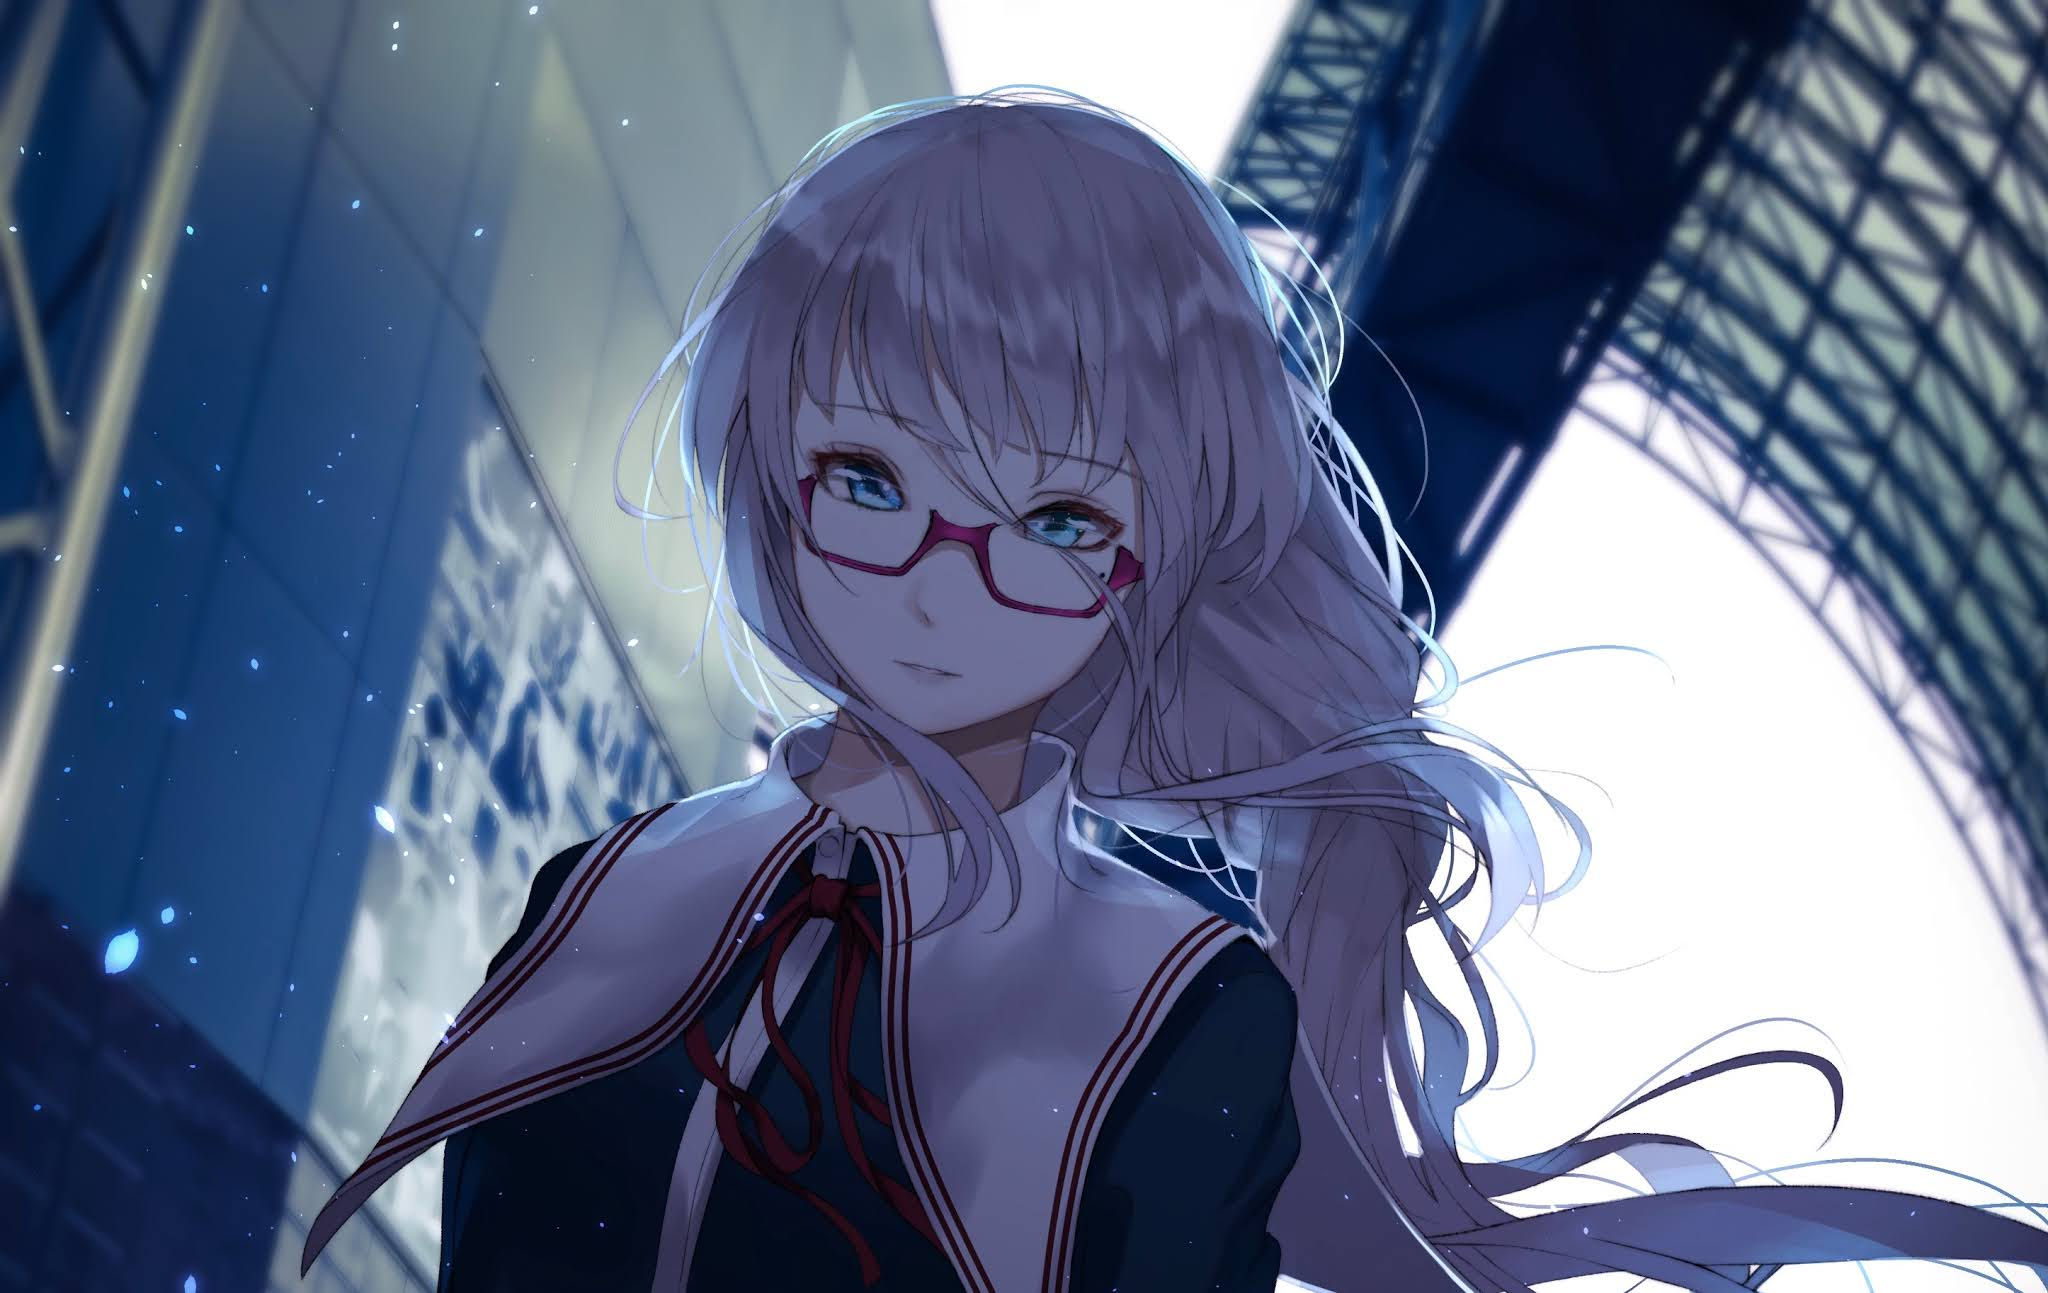 anime girl with white hair and blue eyes